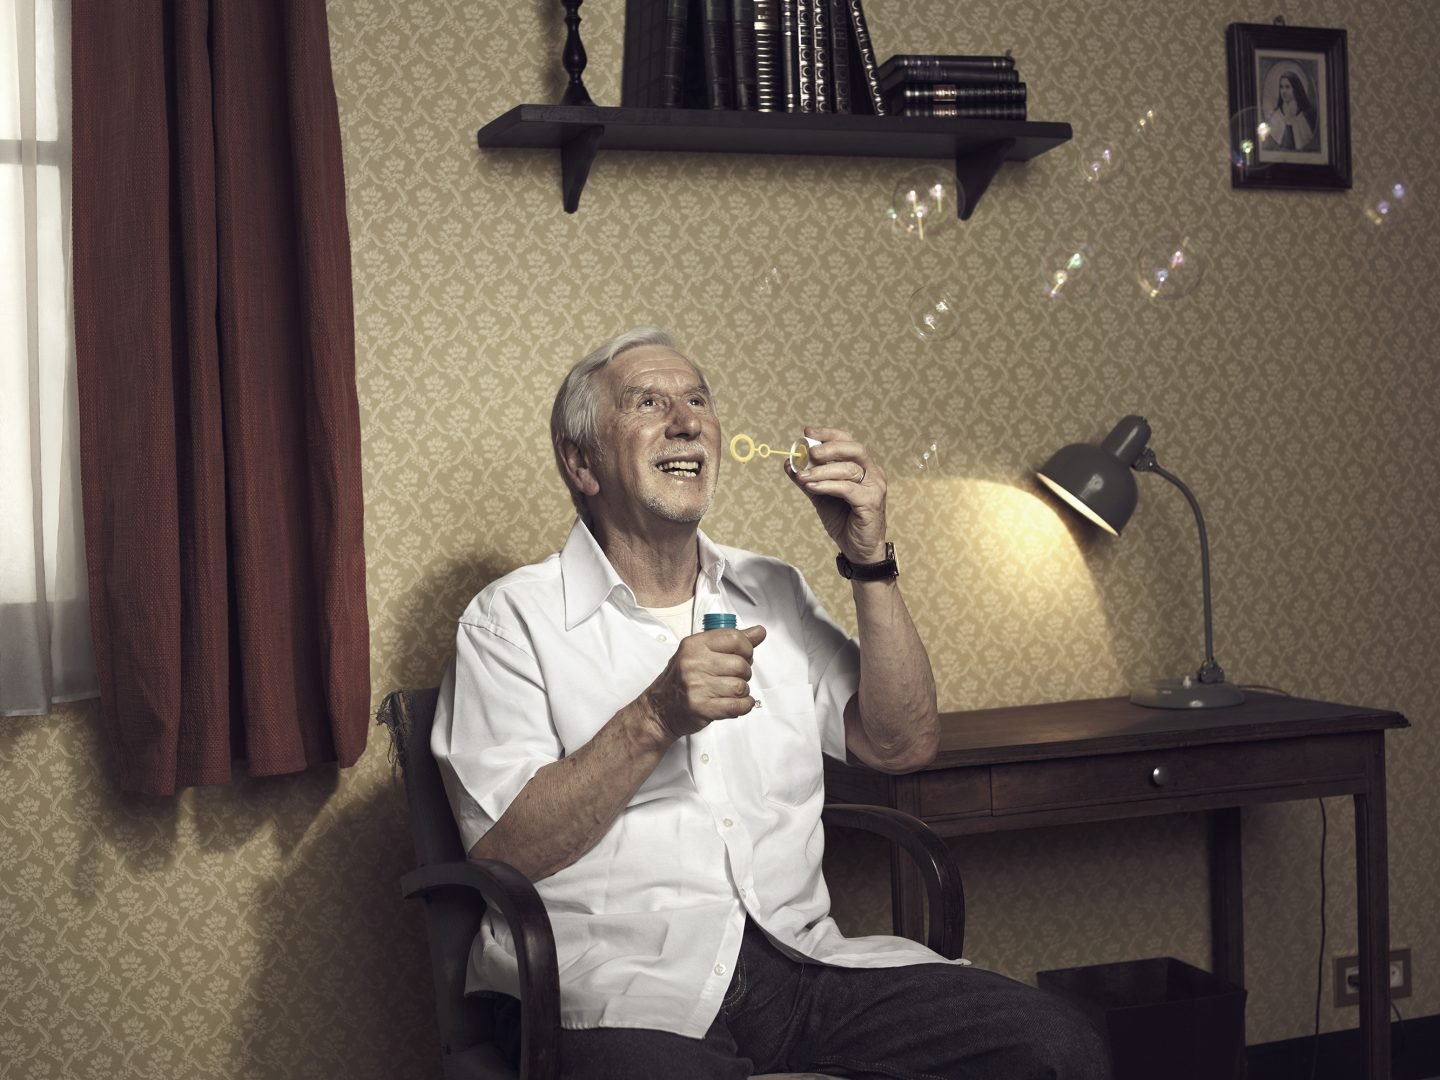 Old man making soap bubbles in room 42 by Stefan Rappo